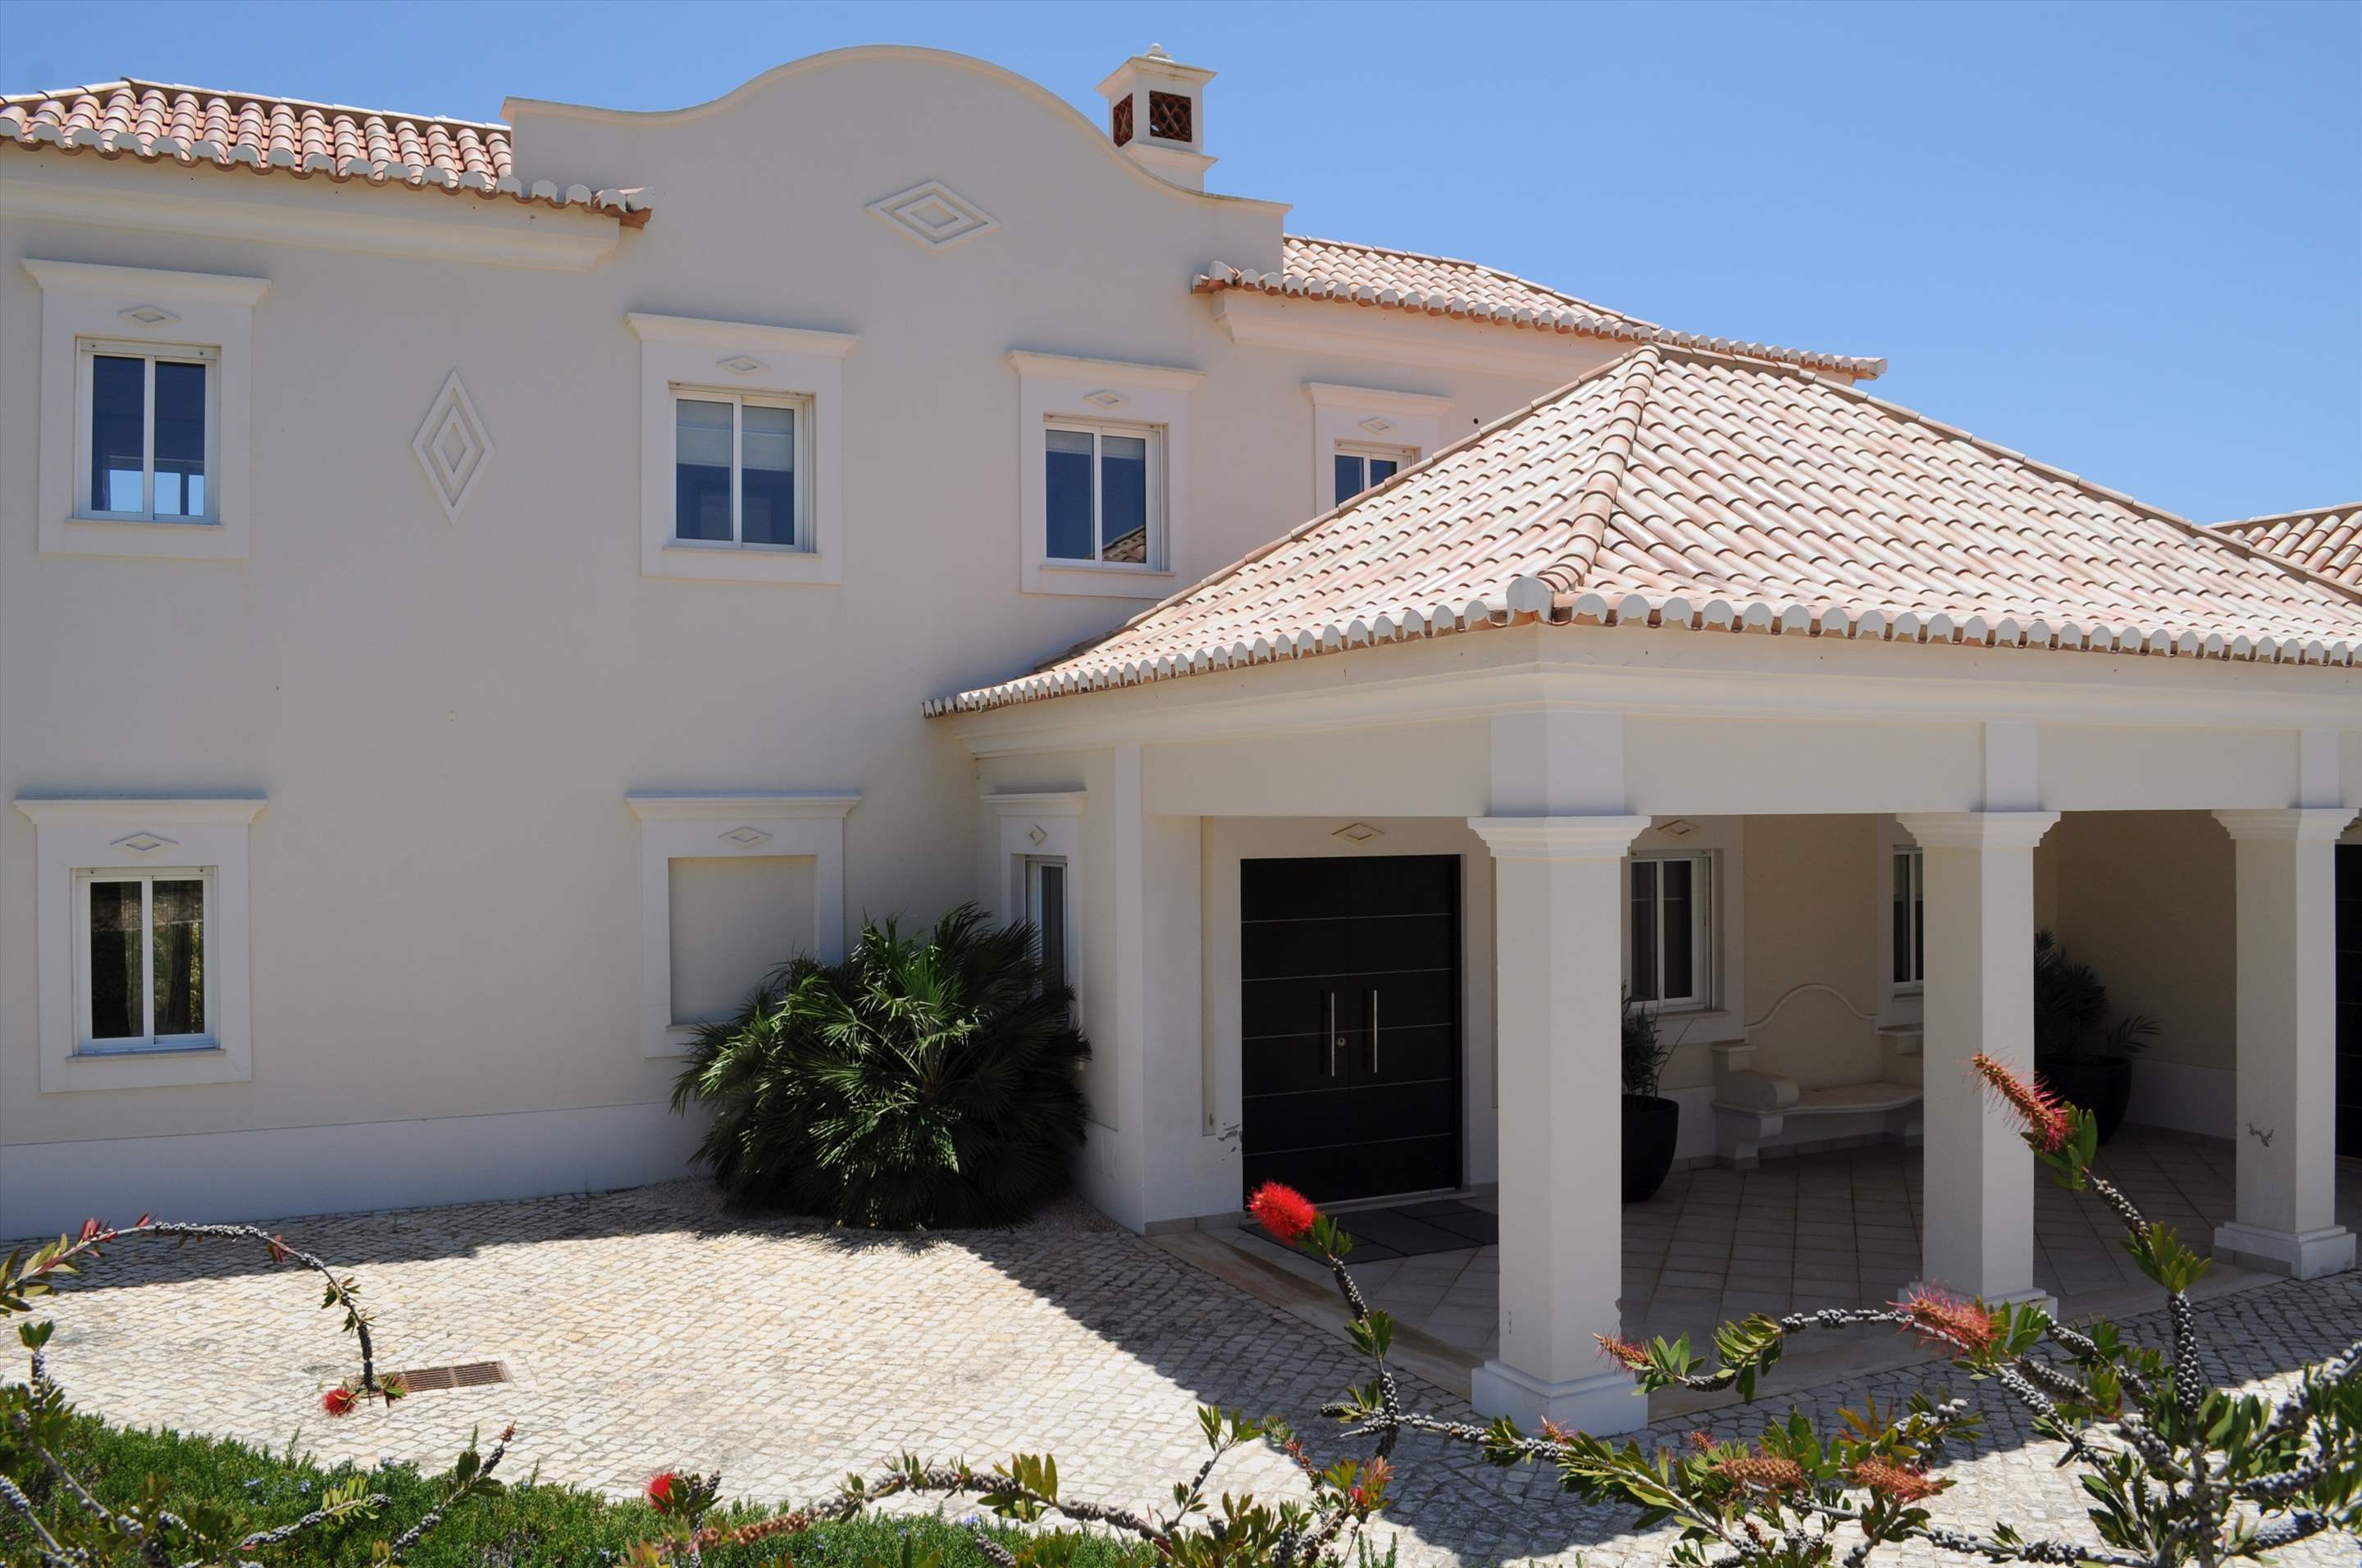 Martinhal Luxury Villa No.18, 5 bedroom villa in Martinhal Sagres, Algarve Photo #11